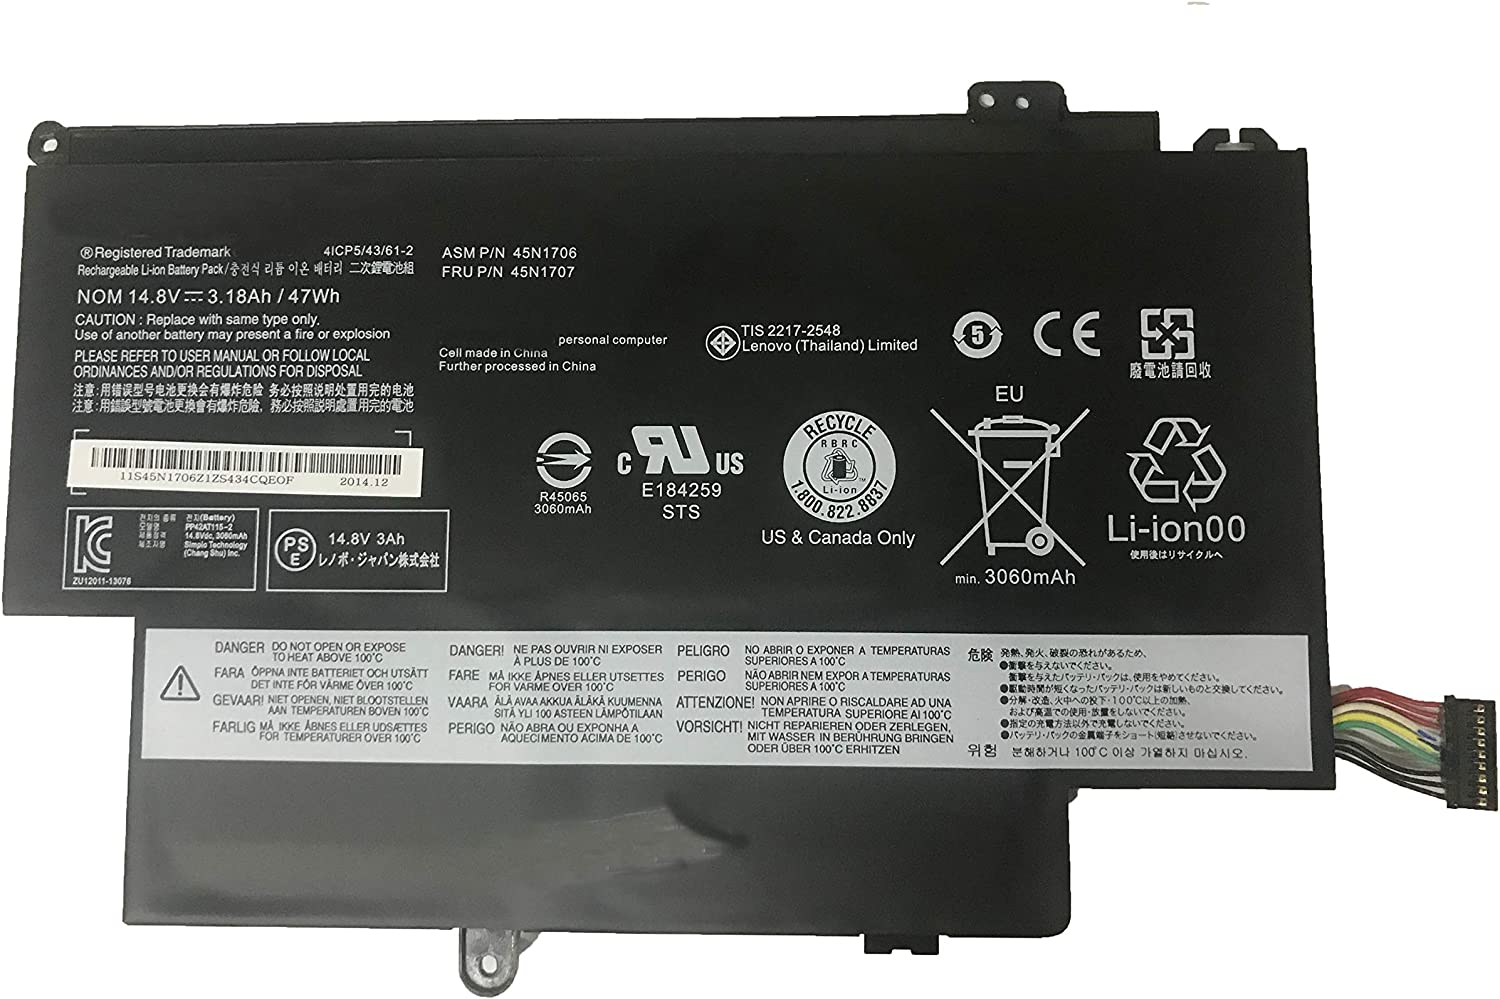 """SUNNEAR 45N1706 45N1707 48Wh Replacement Laptop Battery for Lenovo Thinkpad S1 Yoga 12 12.5"""" 20cds00800 20cds00700 20cds0050 Series Notebook 45N1704 45N1705 14.8V 3180mAh"""